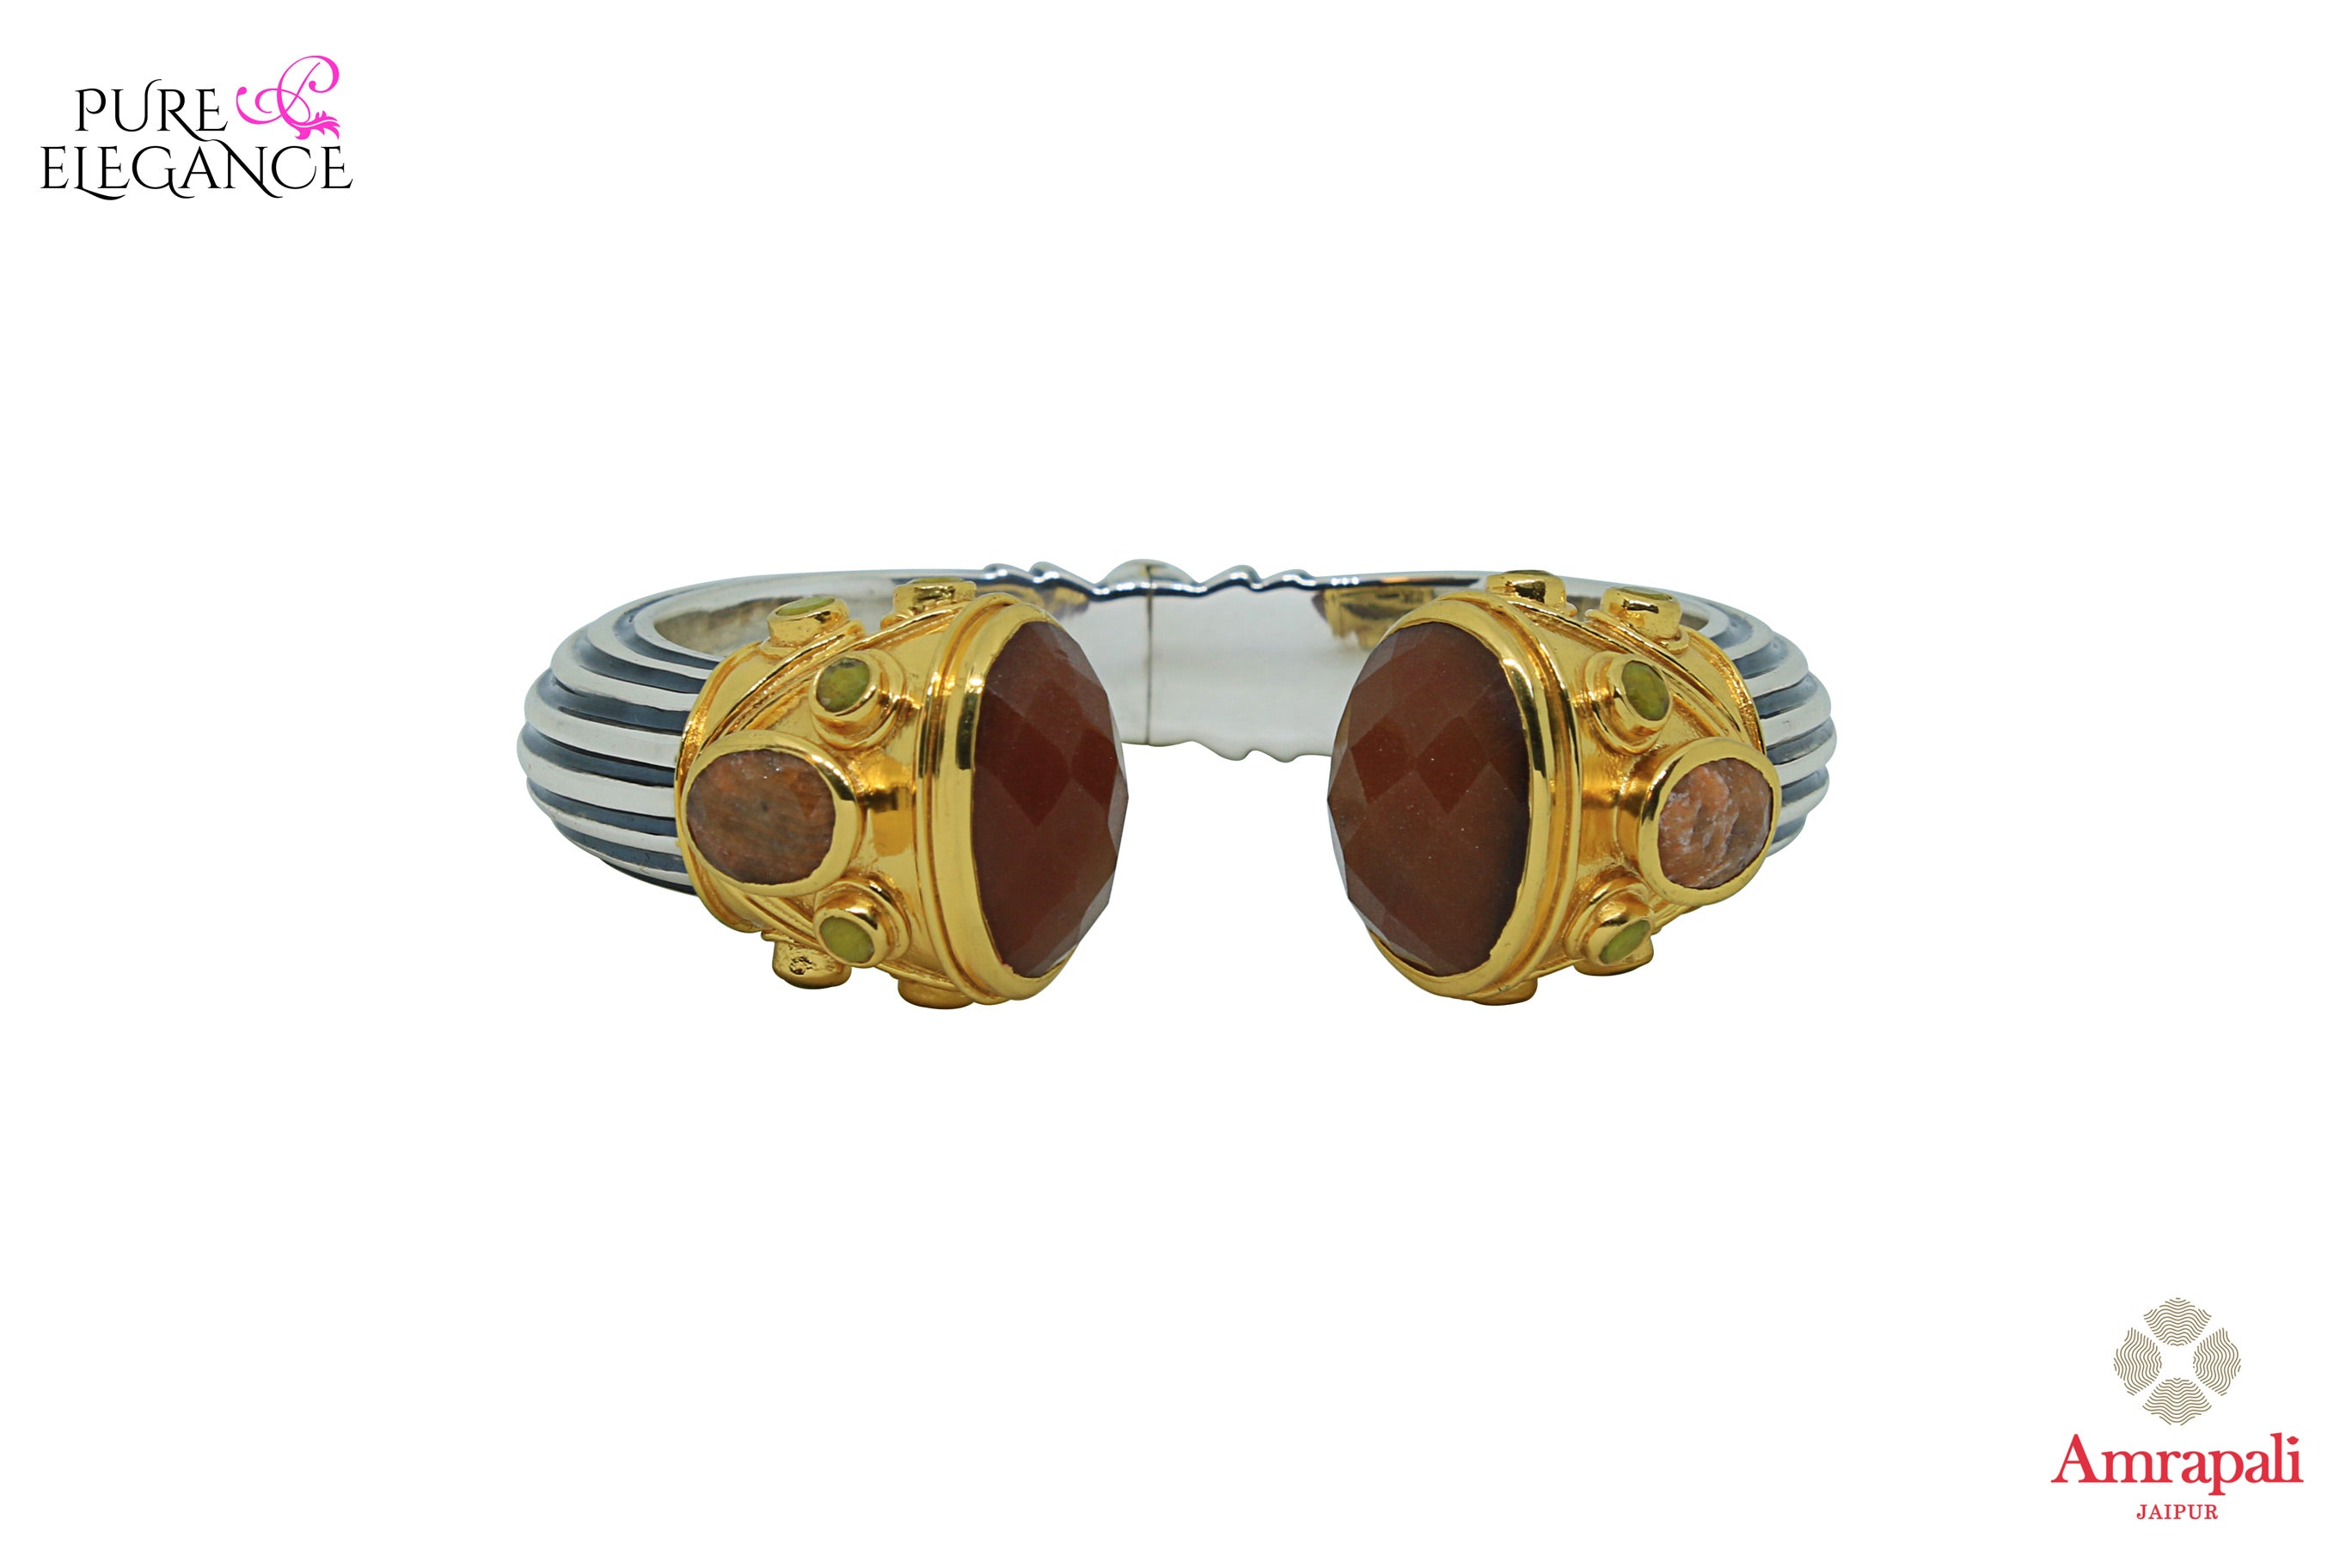 Shop Amrapali silver gold plated stone cuff bracelet with online in USA. Find an exquisite collection of handcrafted silver gold plated jewelry in USA at Pure Elegance Indian fashion store. Complete your festive look with traditional Indian jewellery, silver gold plated earrings, silver jewelry from our online store.-front